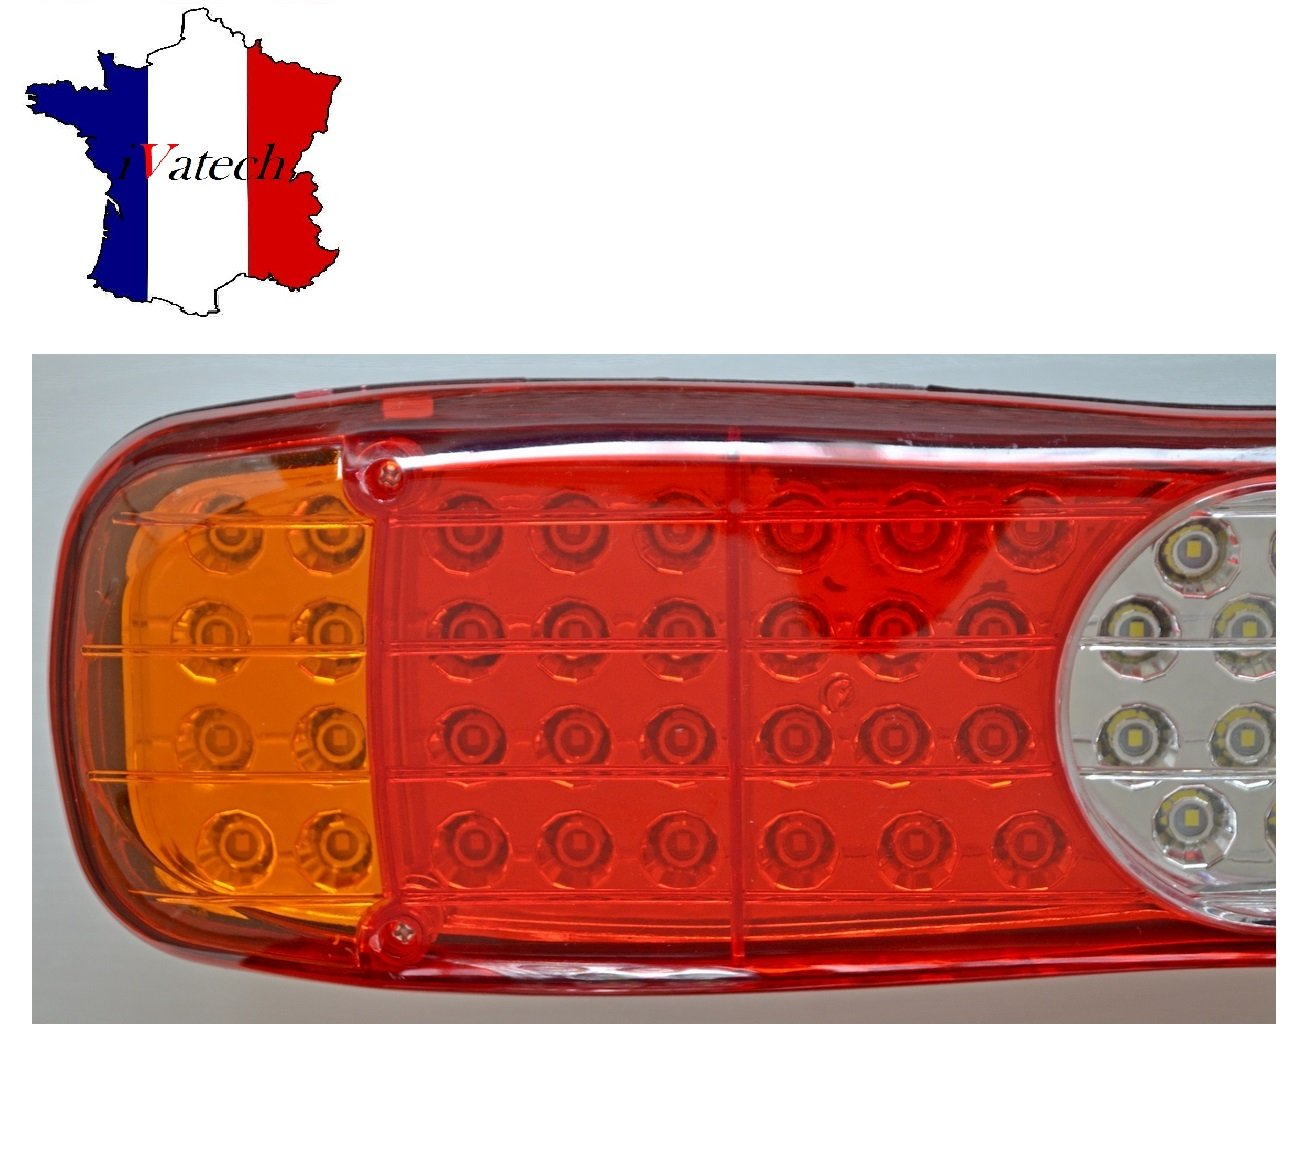 PAIRE 12V 45 LED FEUX ARRIERE CAMION REMORQUE FOURGON CHASSIS 5 FONCTONS